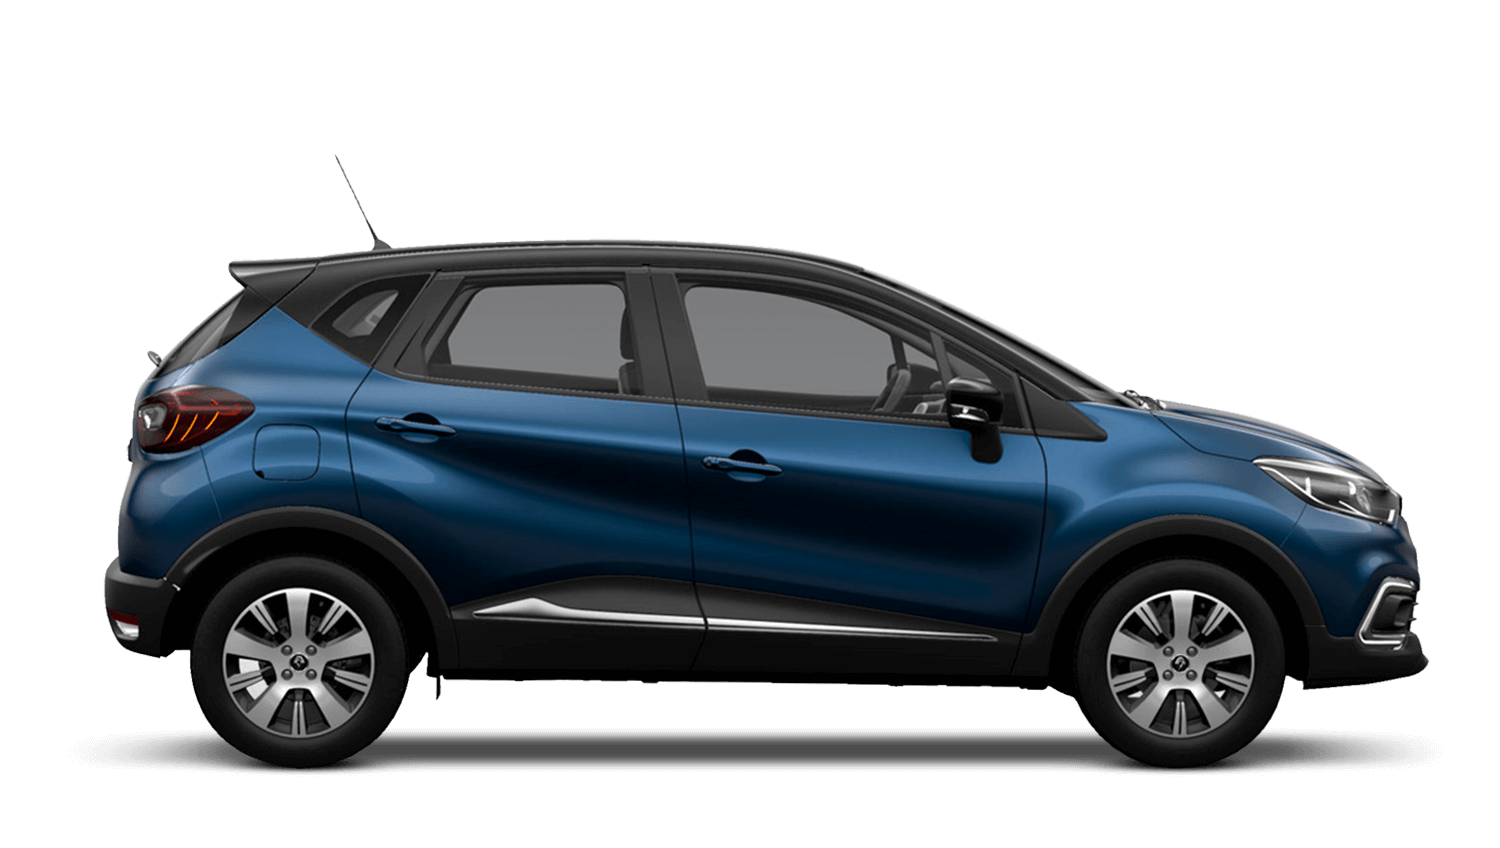 Ocean Blue with Diamond Black roof Renault CAPTUR